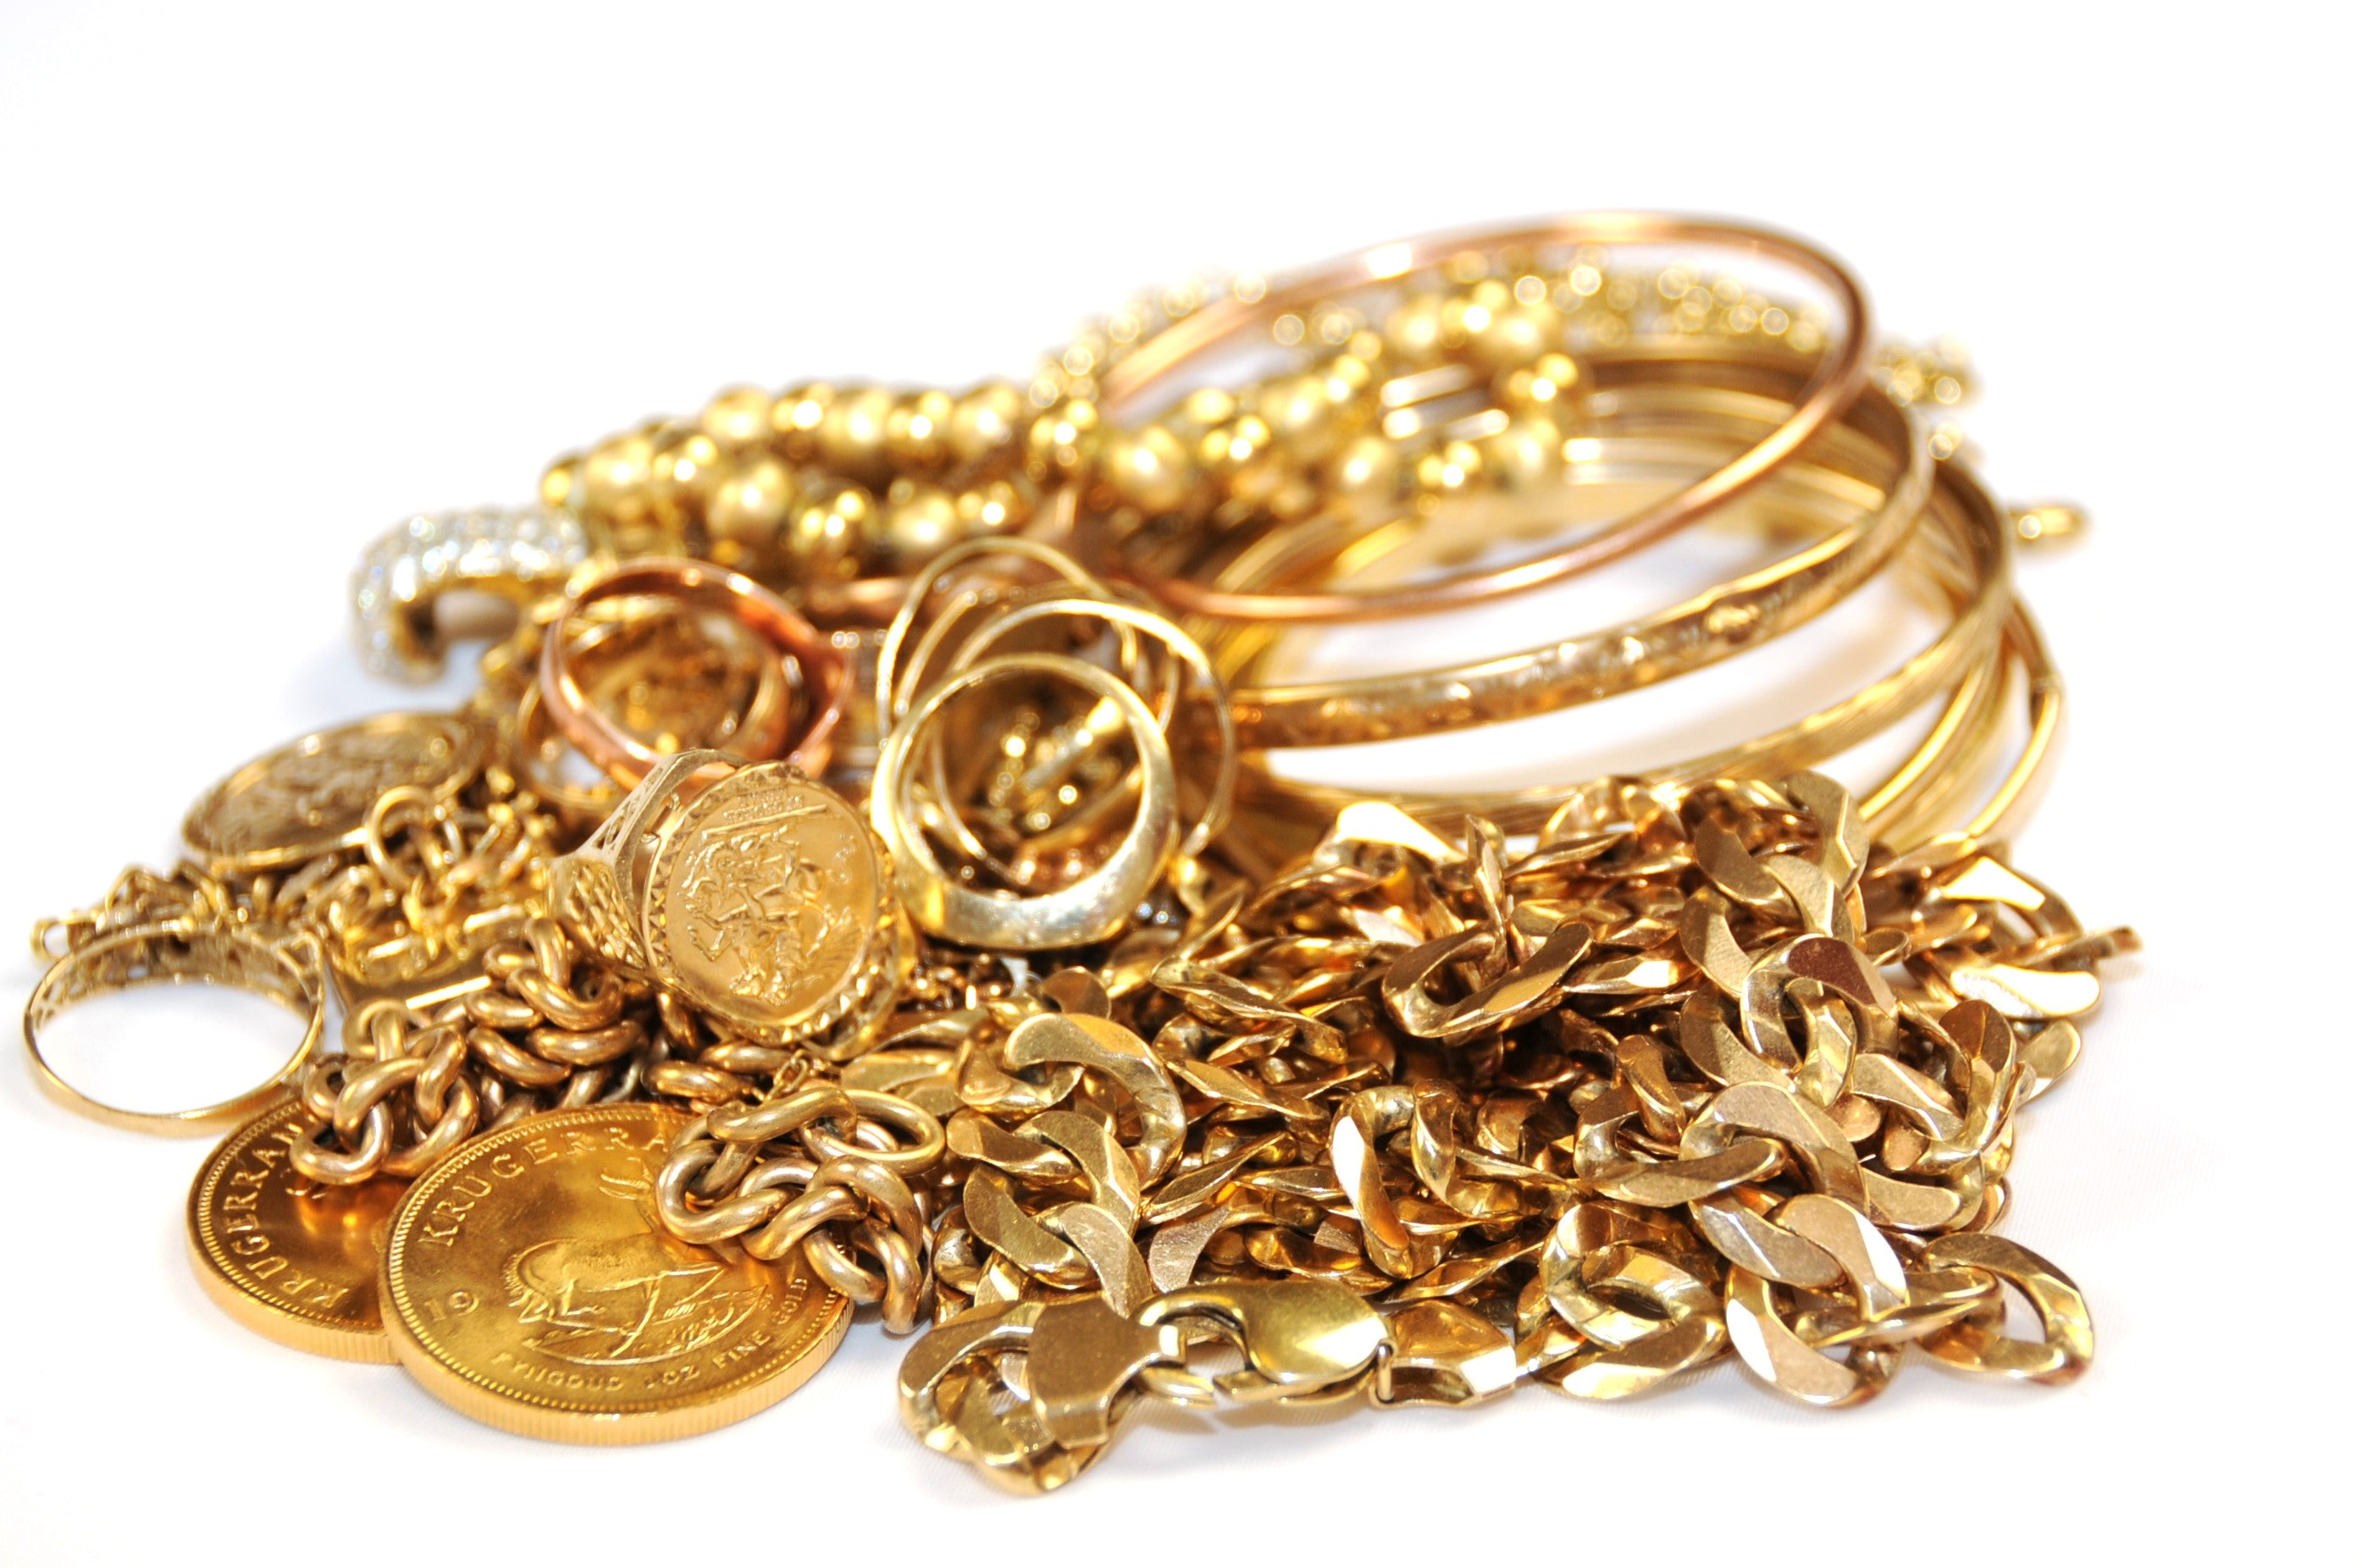 Cash for Gold Newcastle | S.Murray Jewellers